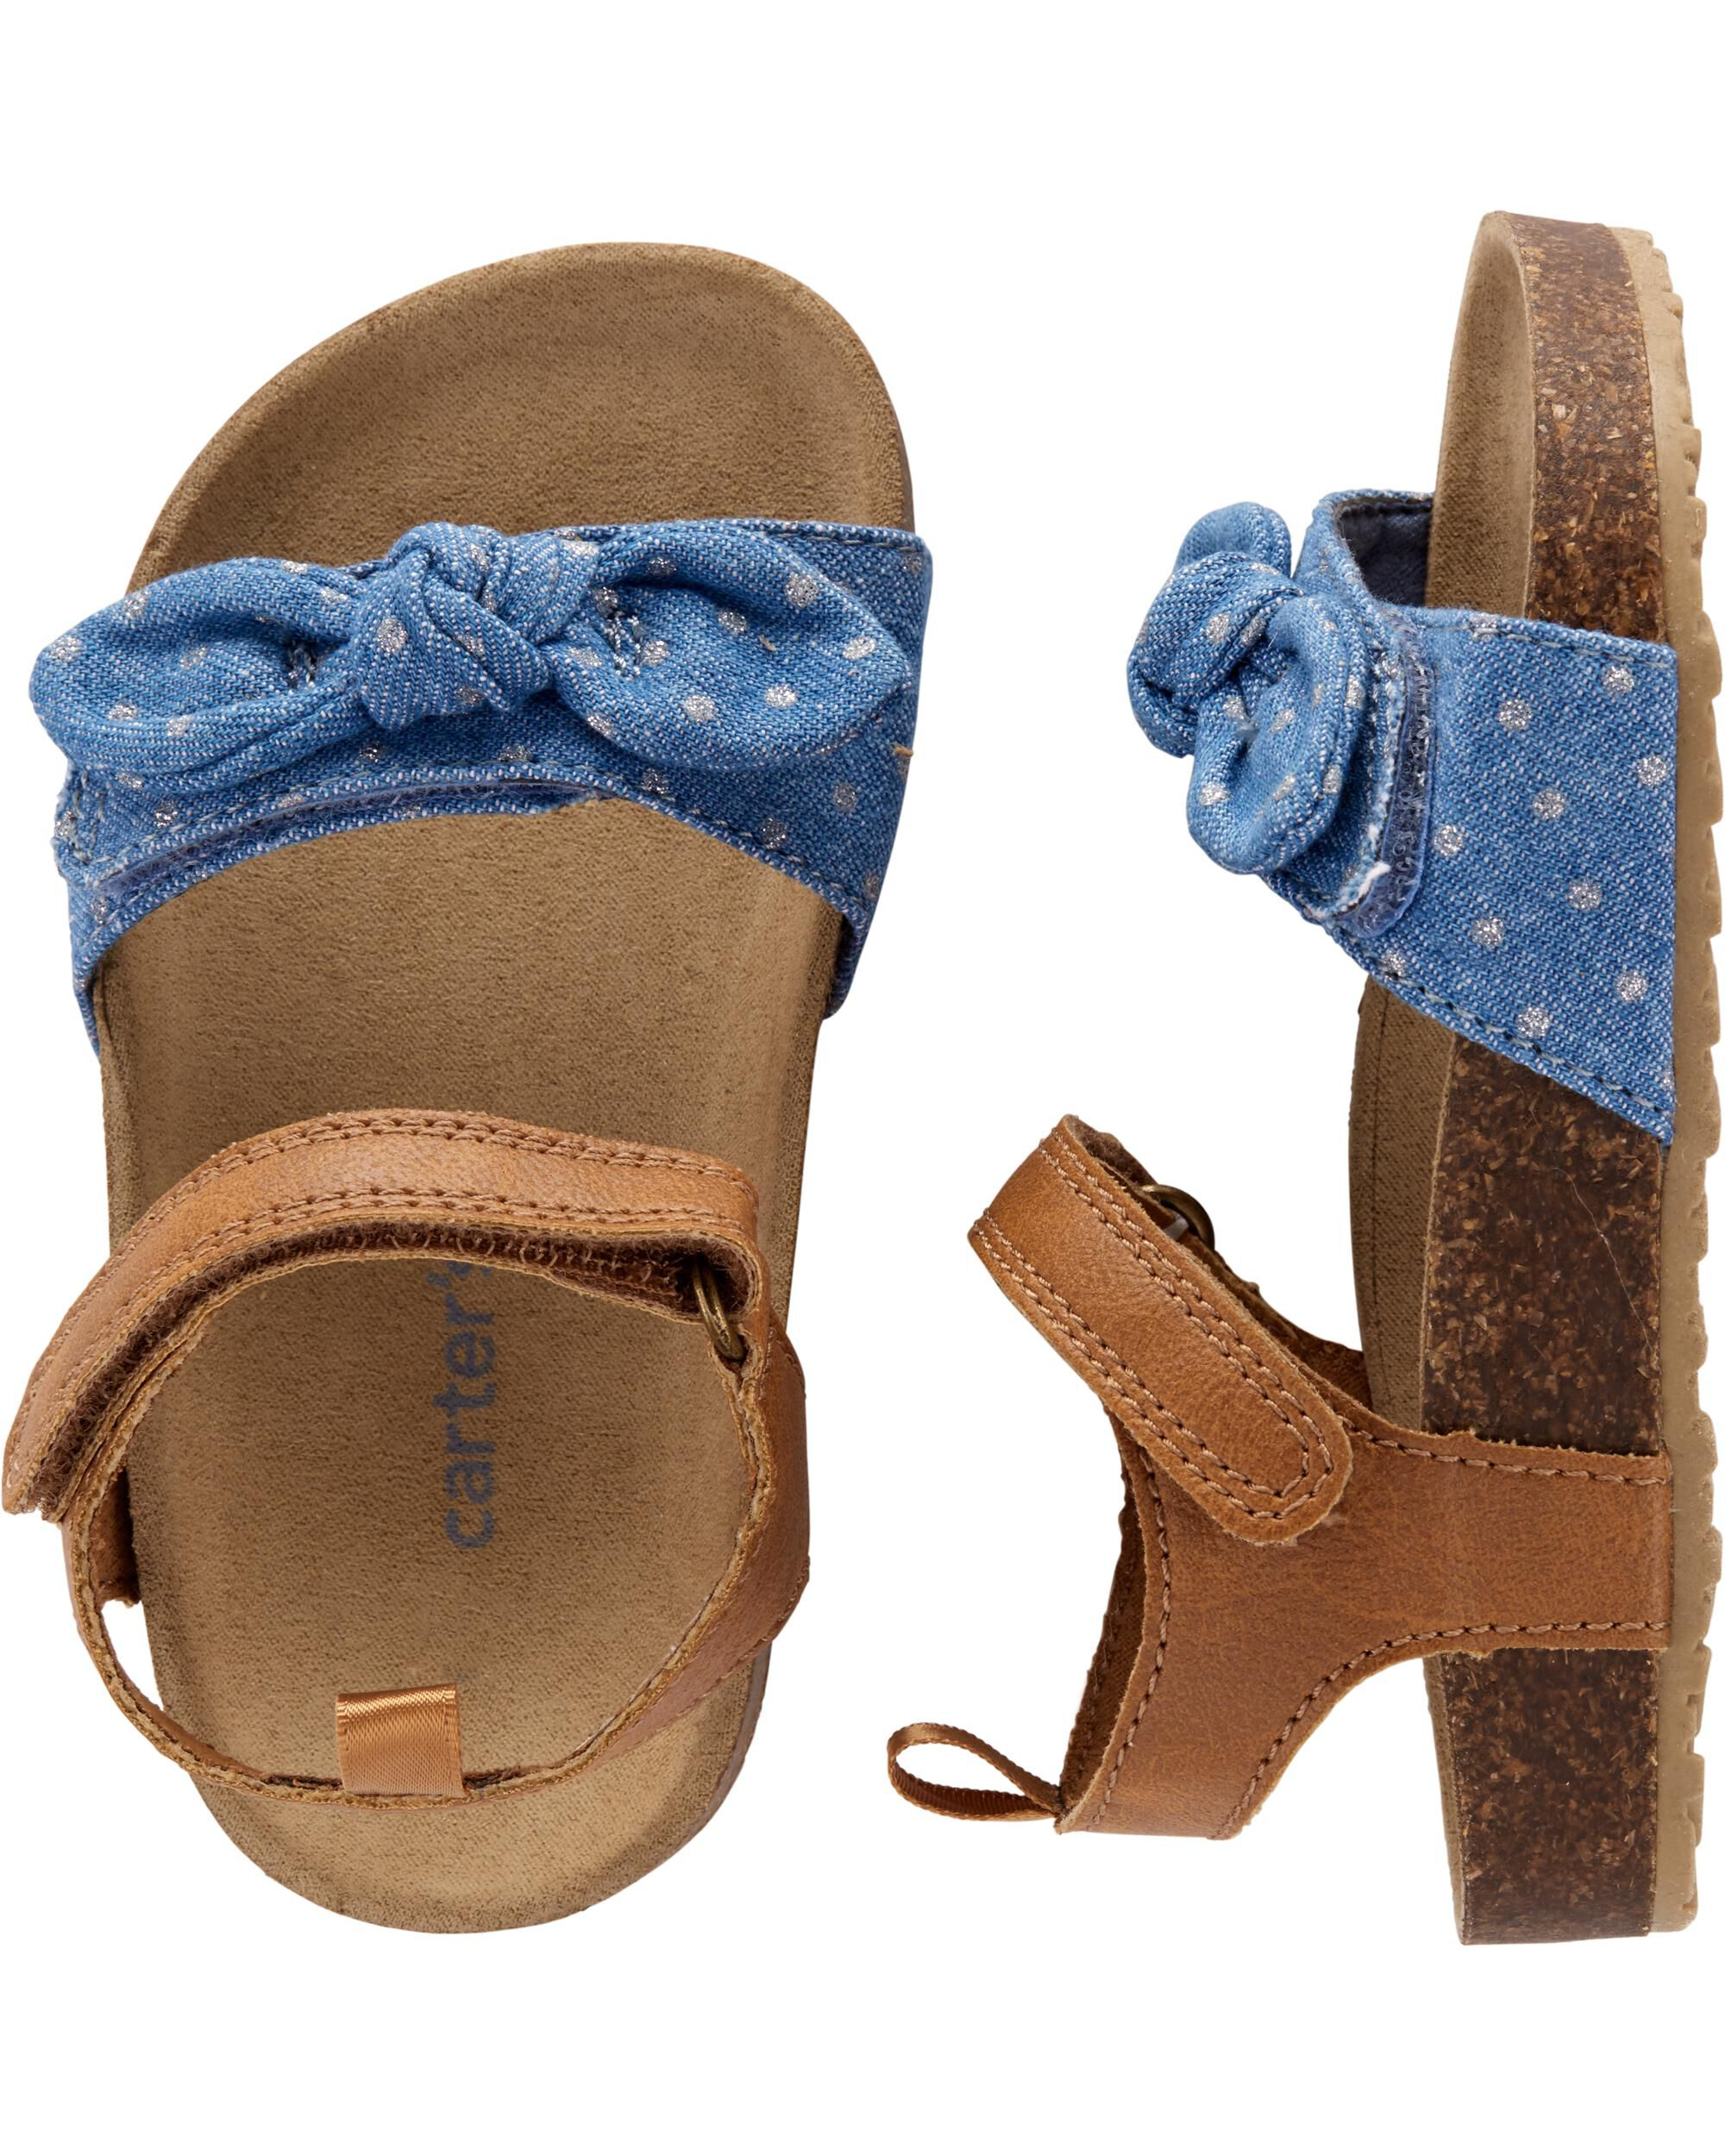 Chambray Cork Sandals | carters